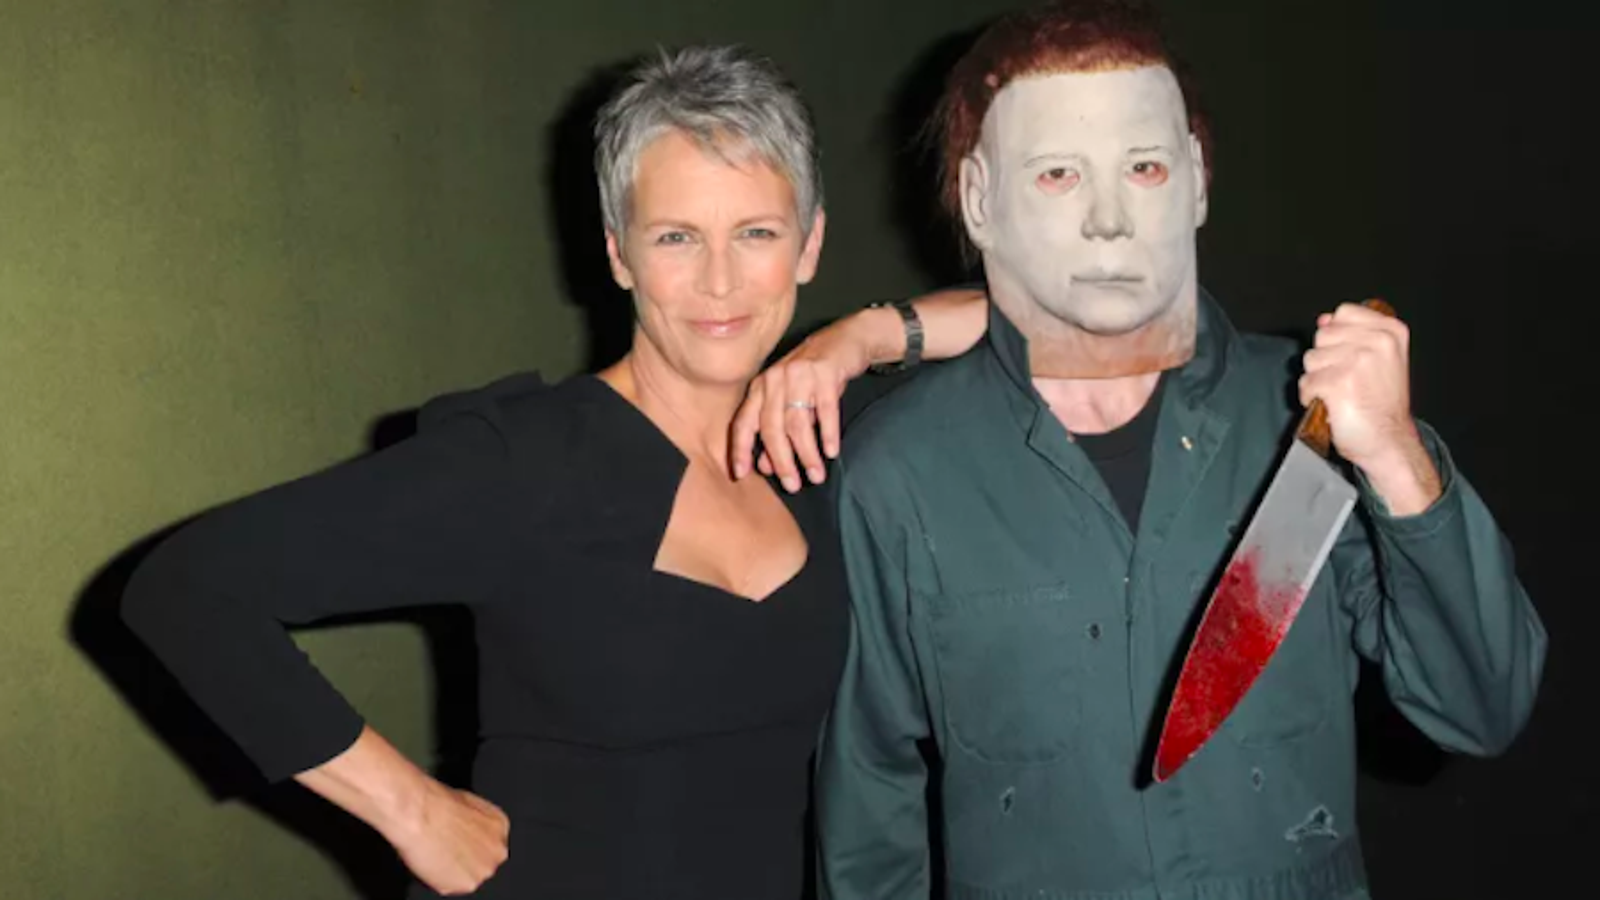 Fox News briefly forgets films aren't real, chastises Jamie Lee Curtis for using a gun in Halloween